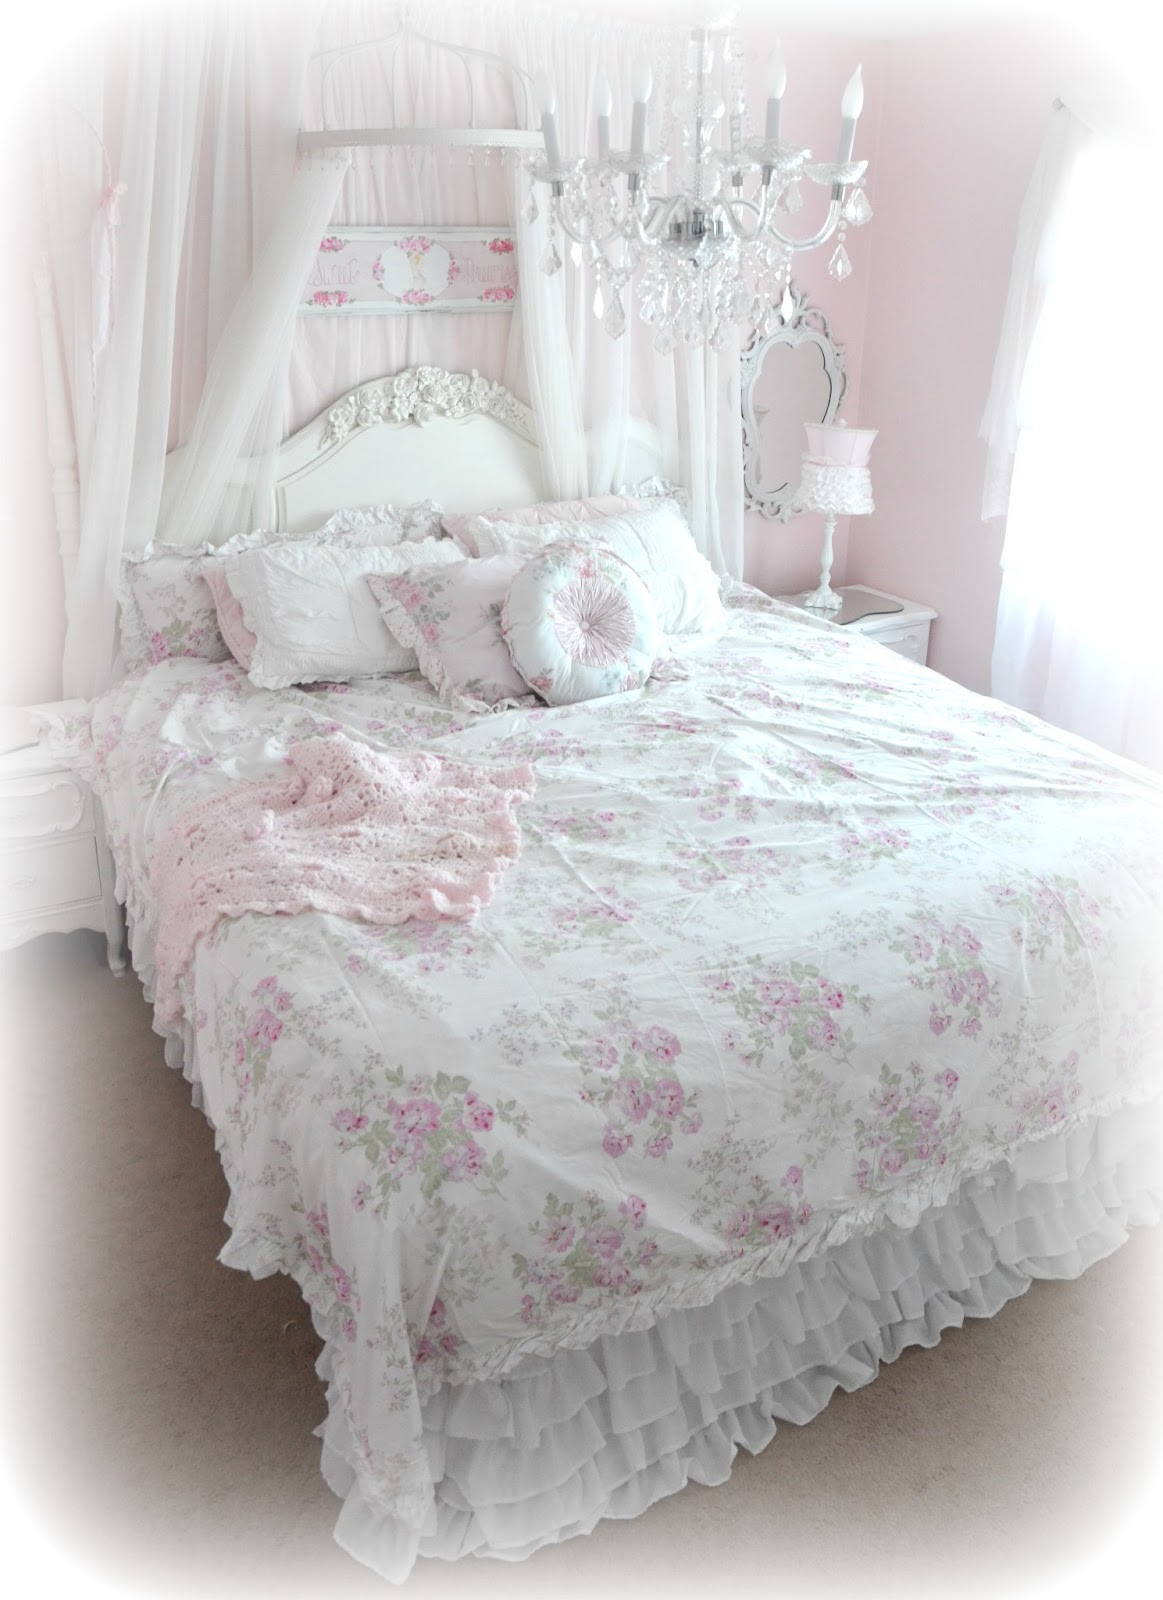 Shabby Chic And Eclectic Decorating Living Room: Shabby Chic: New Simply Shabby Chic Bedding